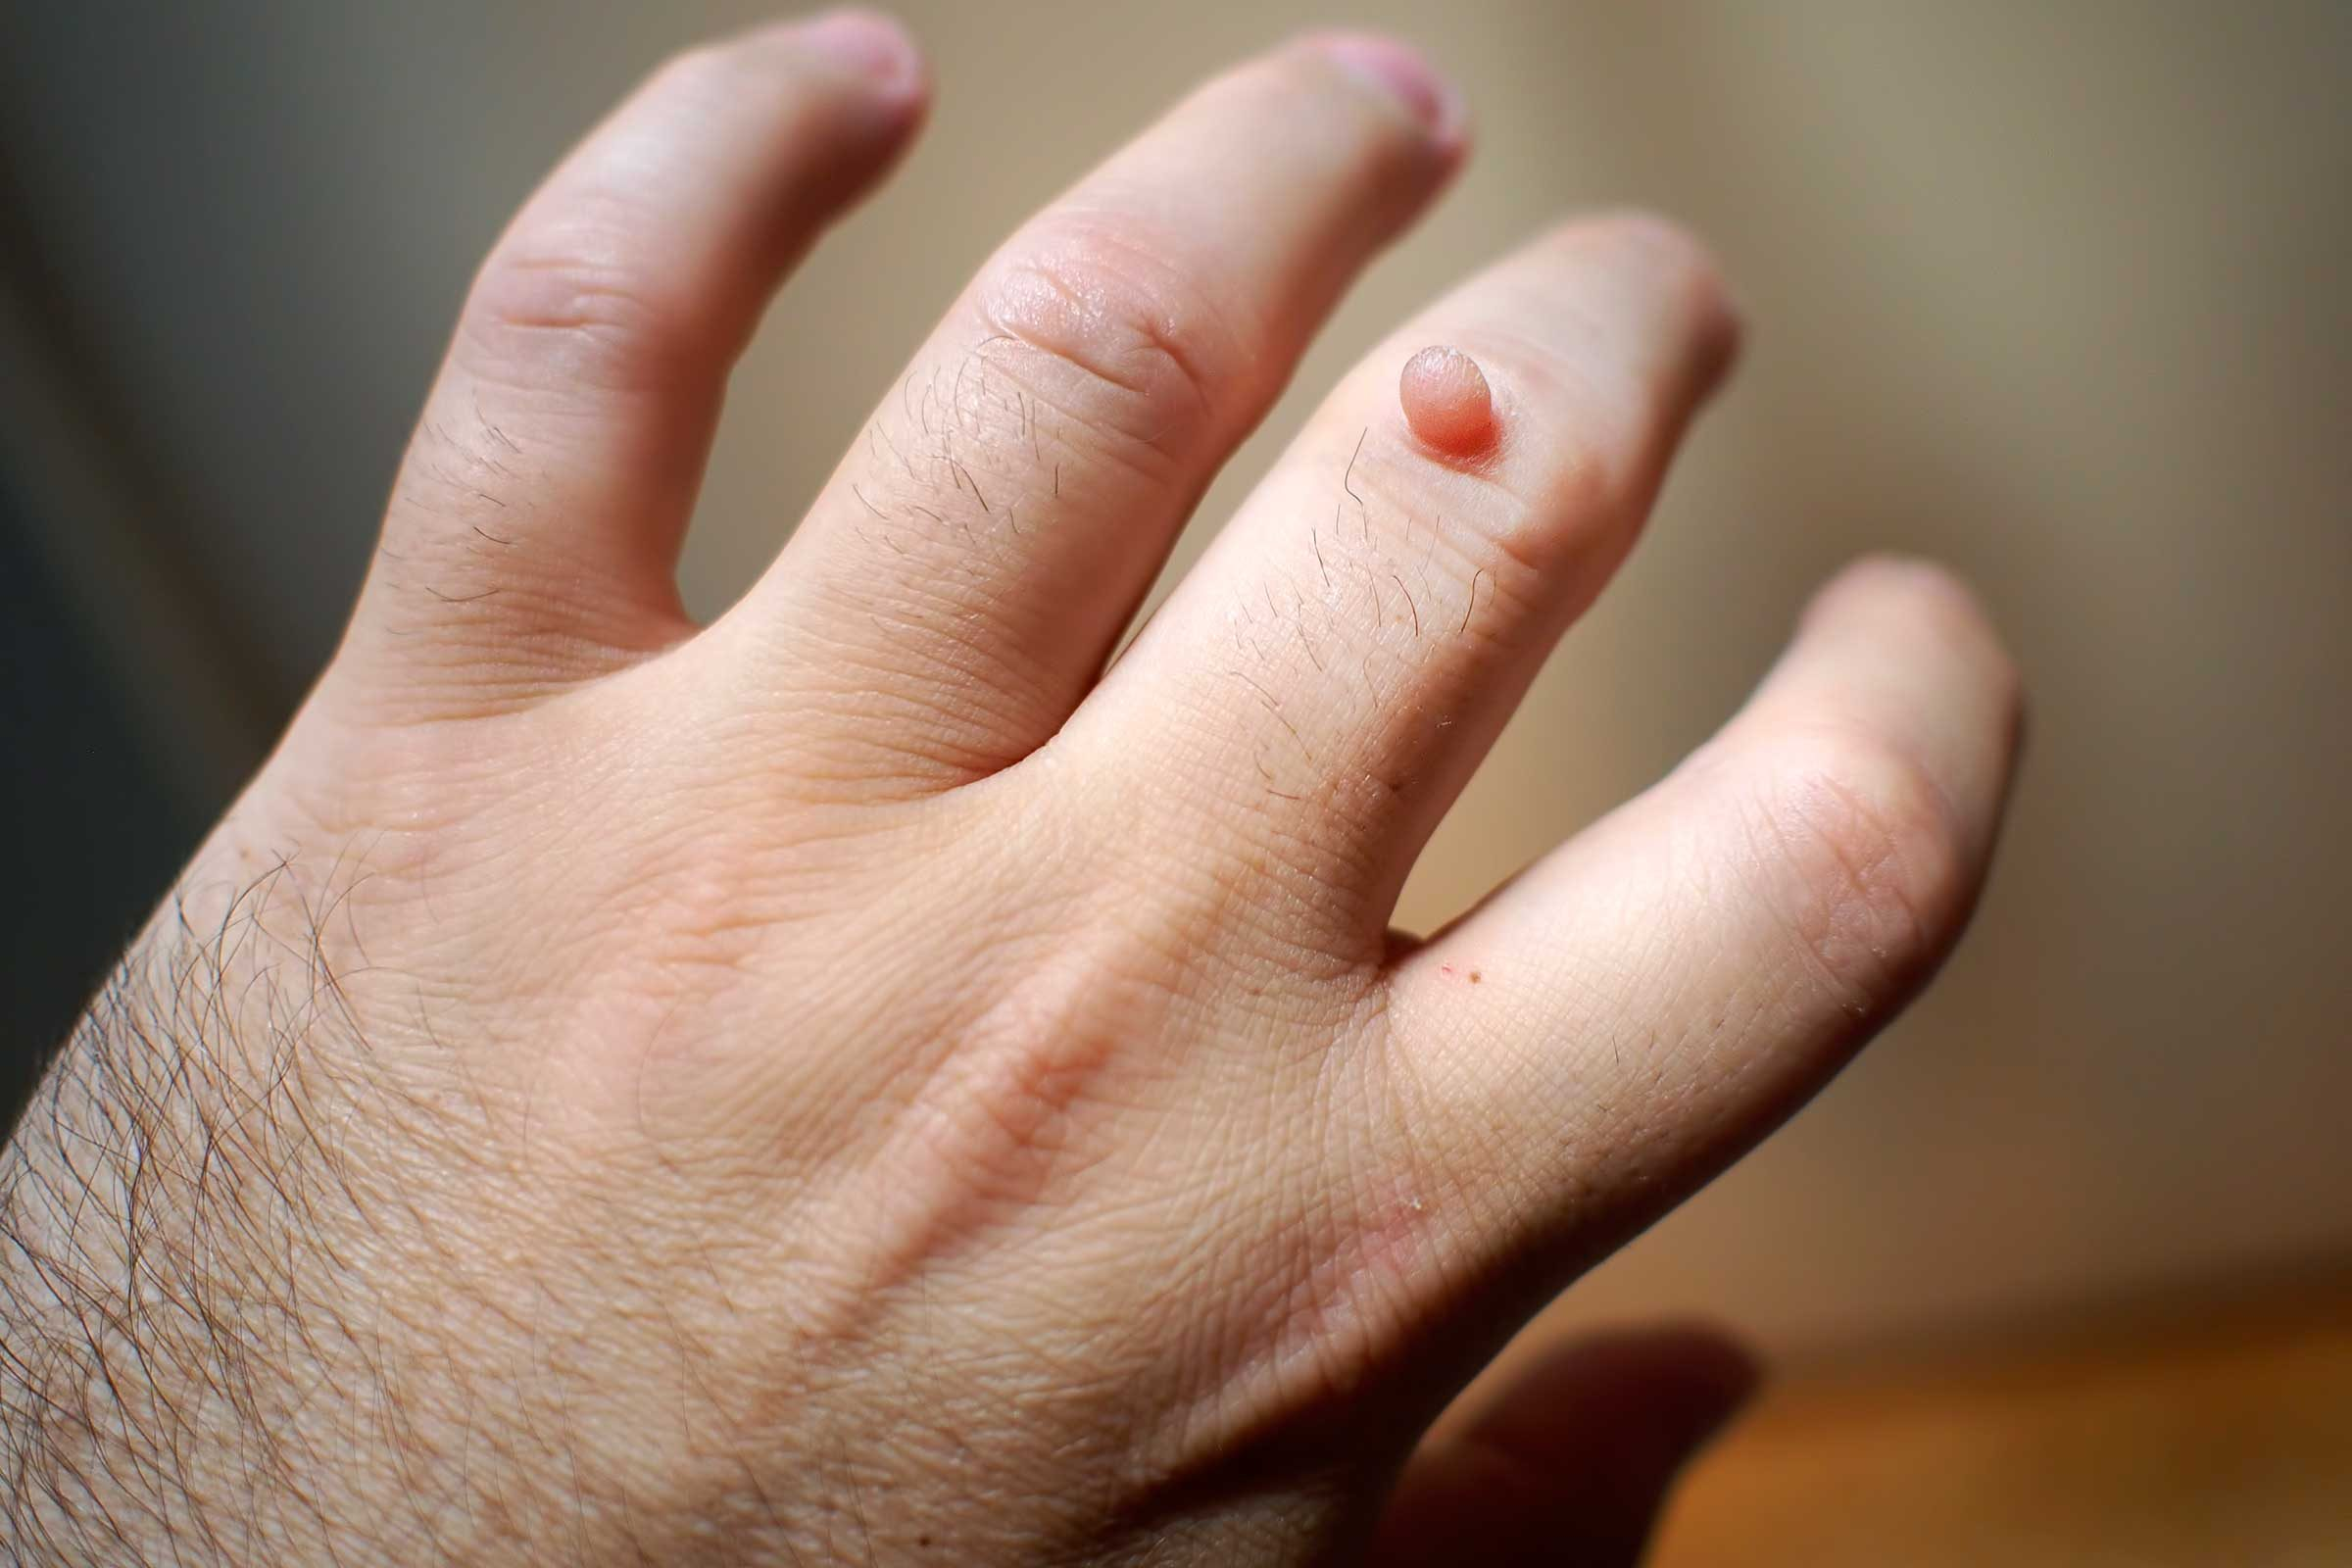 warts on hands only)